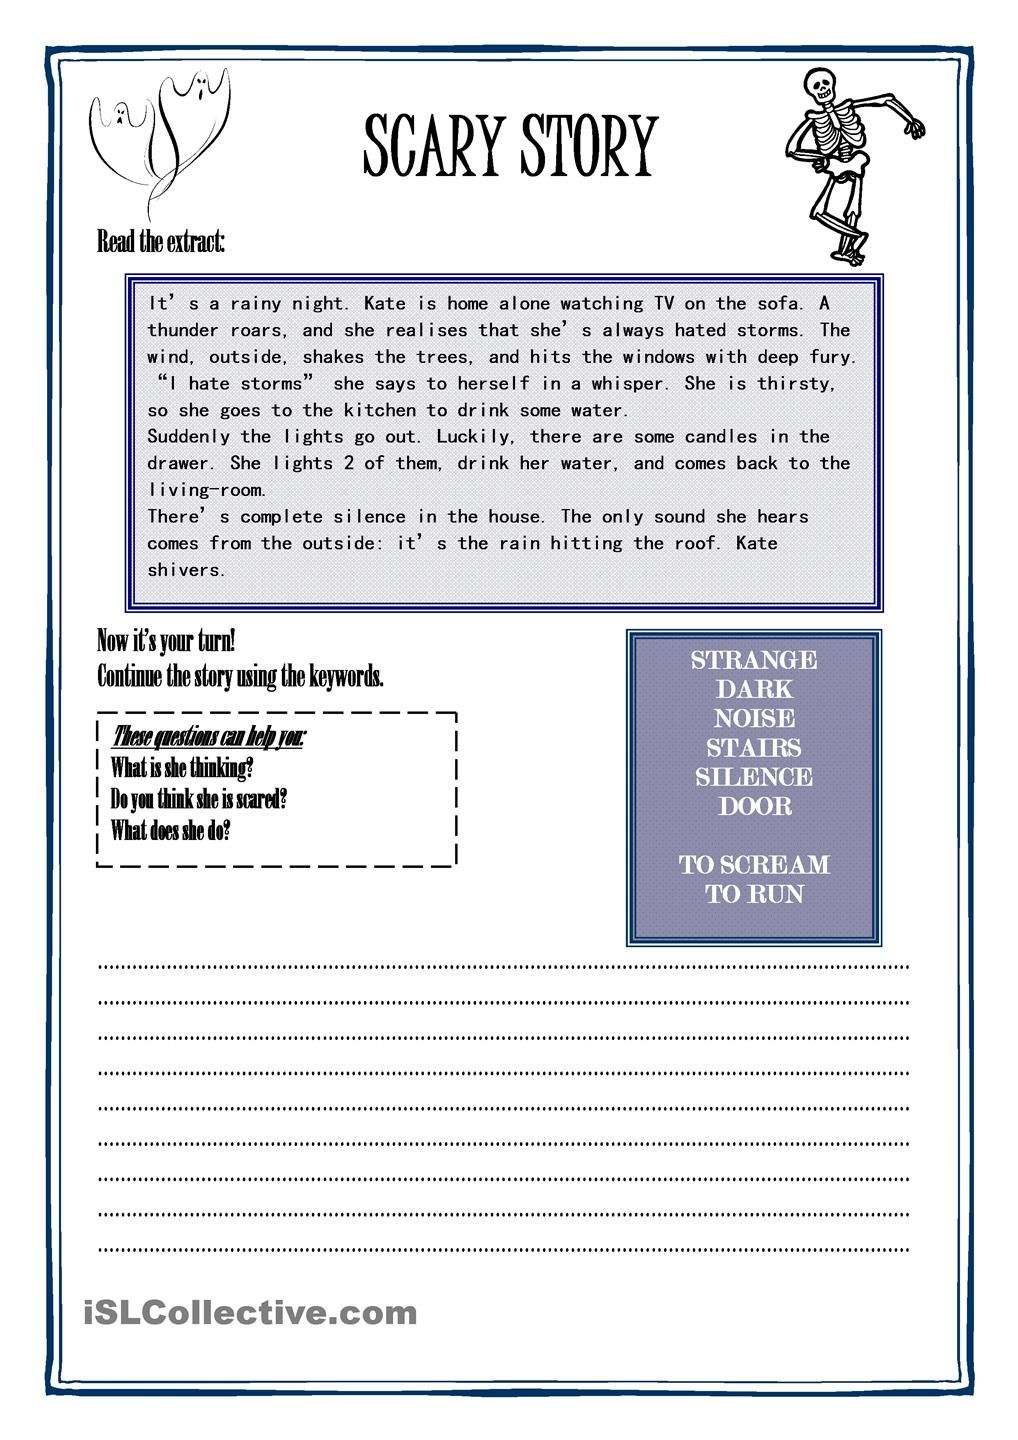 scary story esl caddy scary worksheets and school scary story halloween